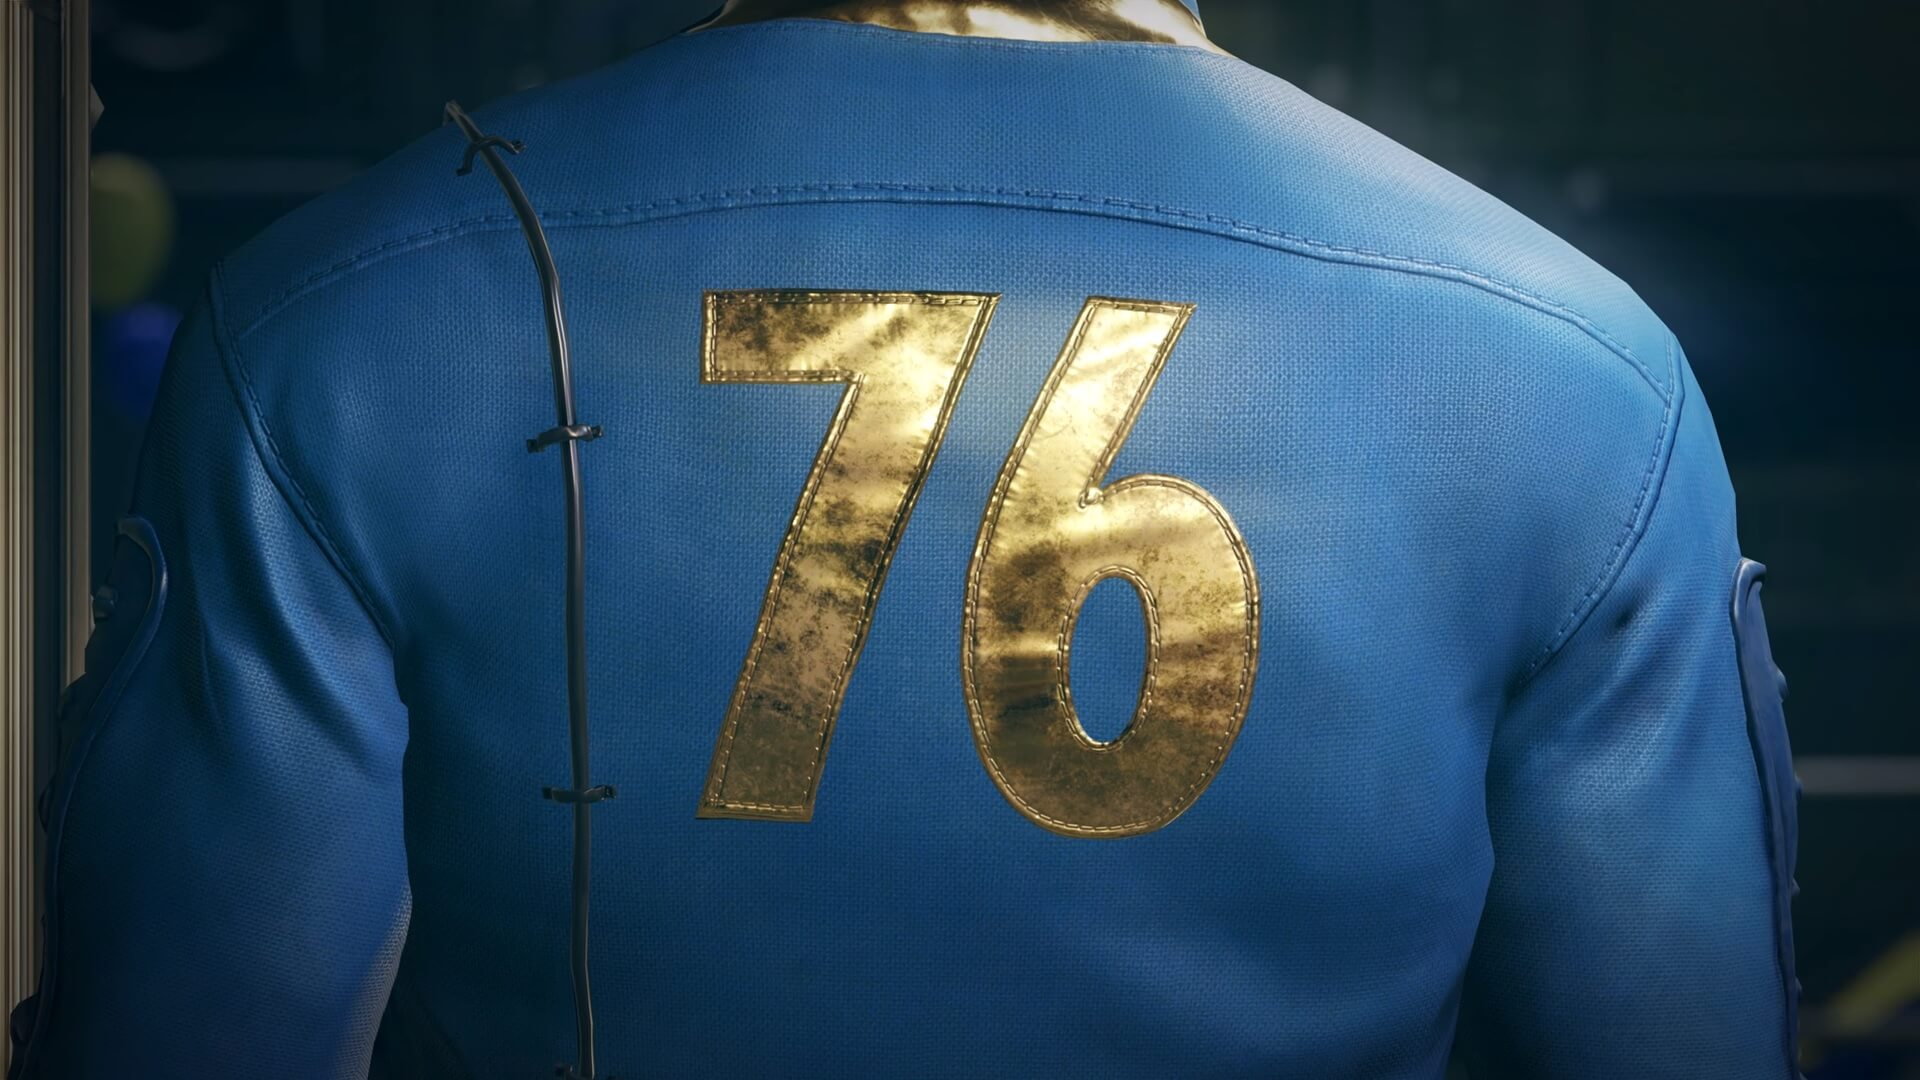 Fallout 76 Wastelanders Update slightly delayed, now releasing on April 14th